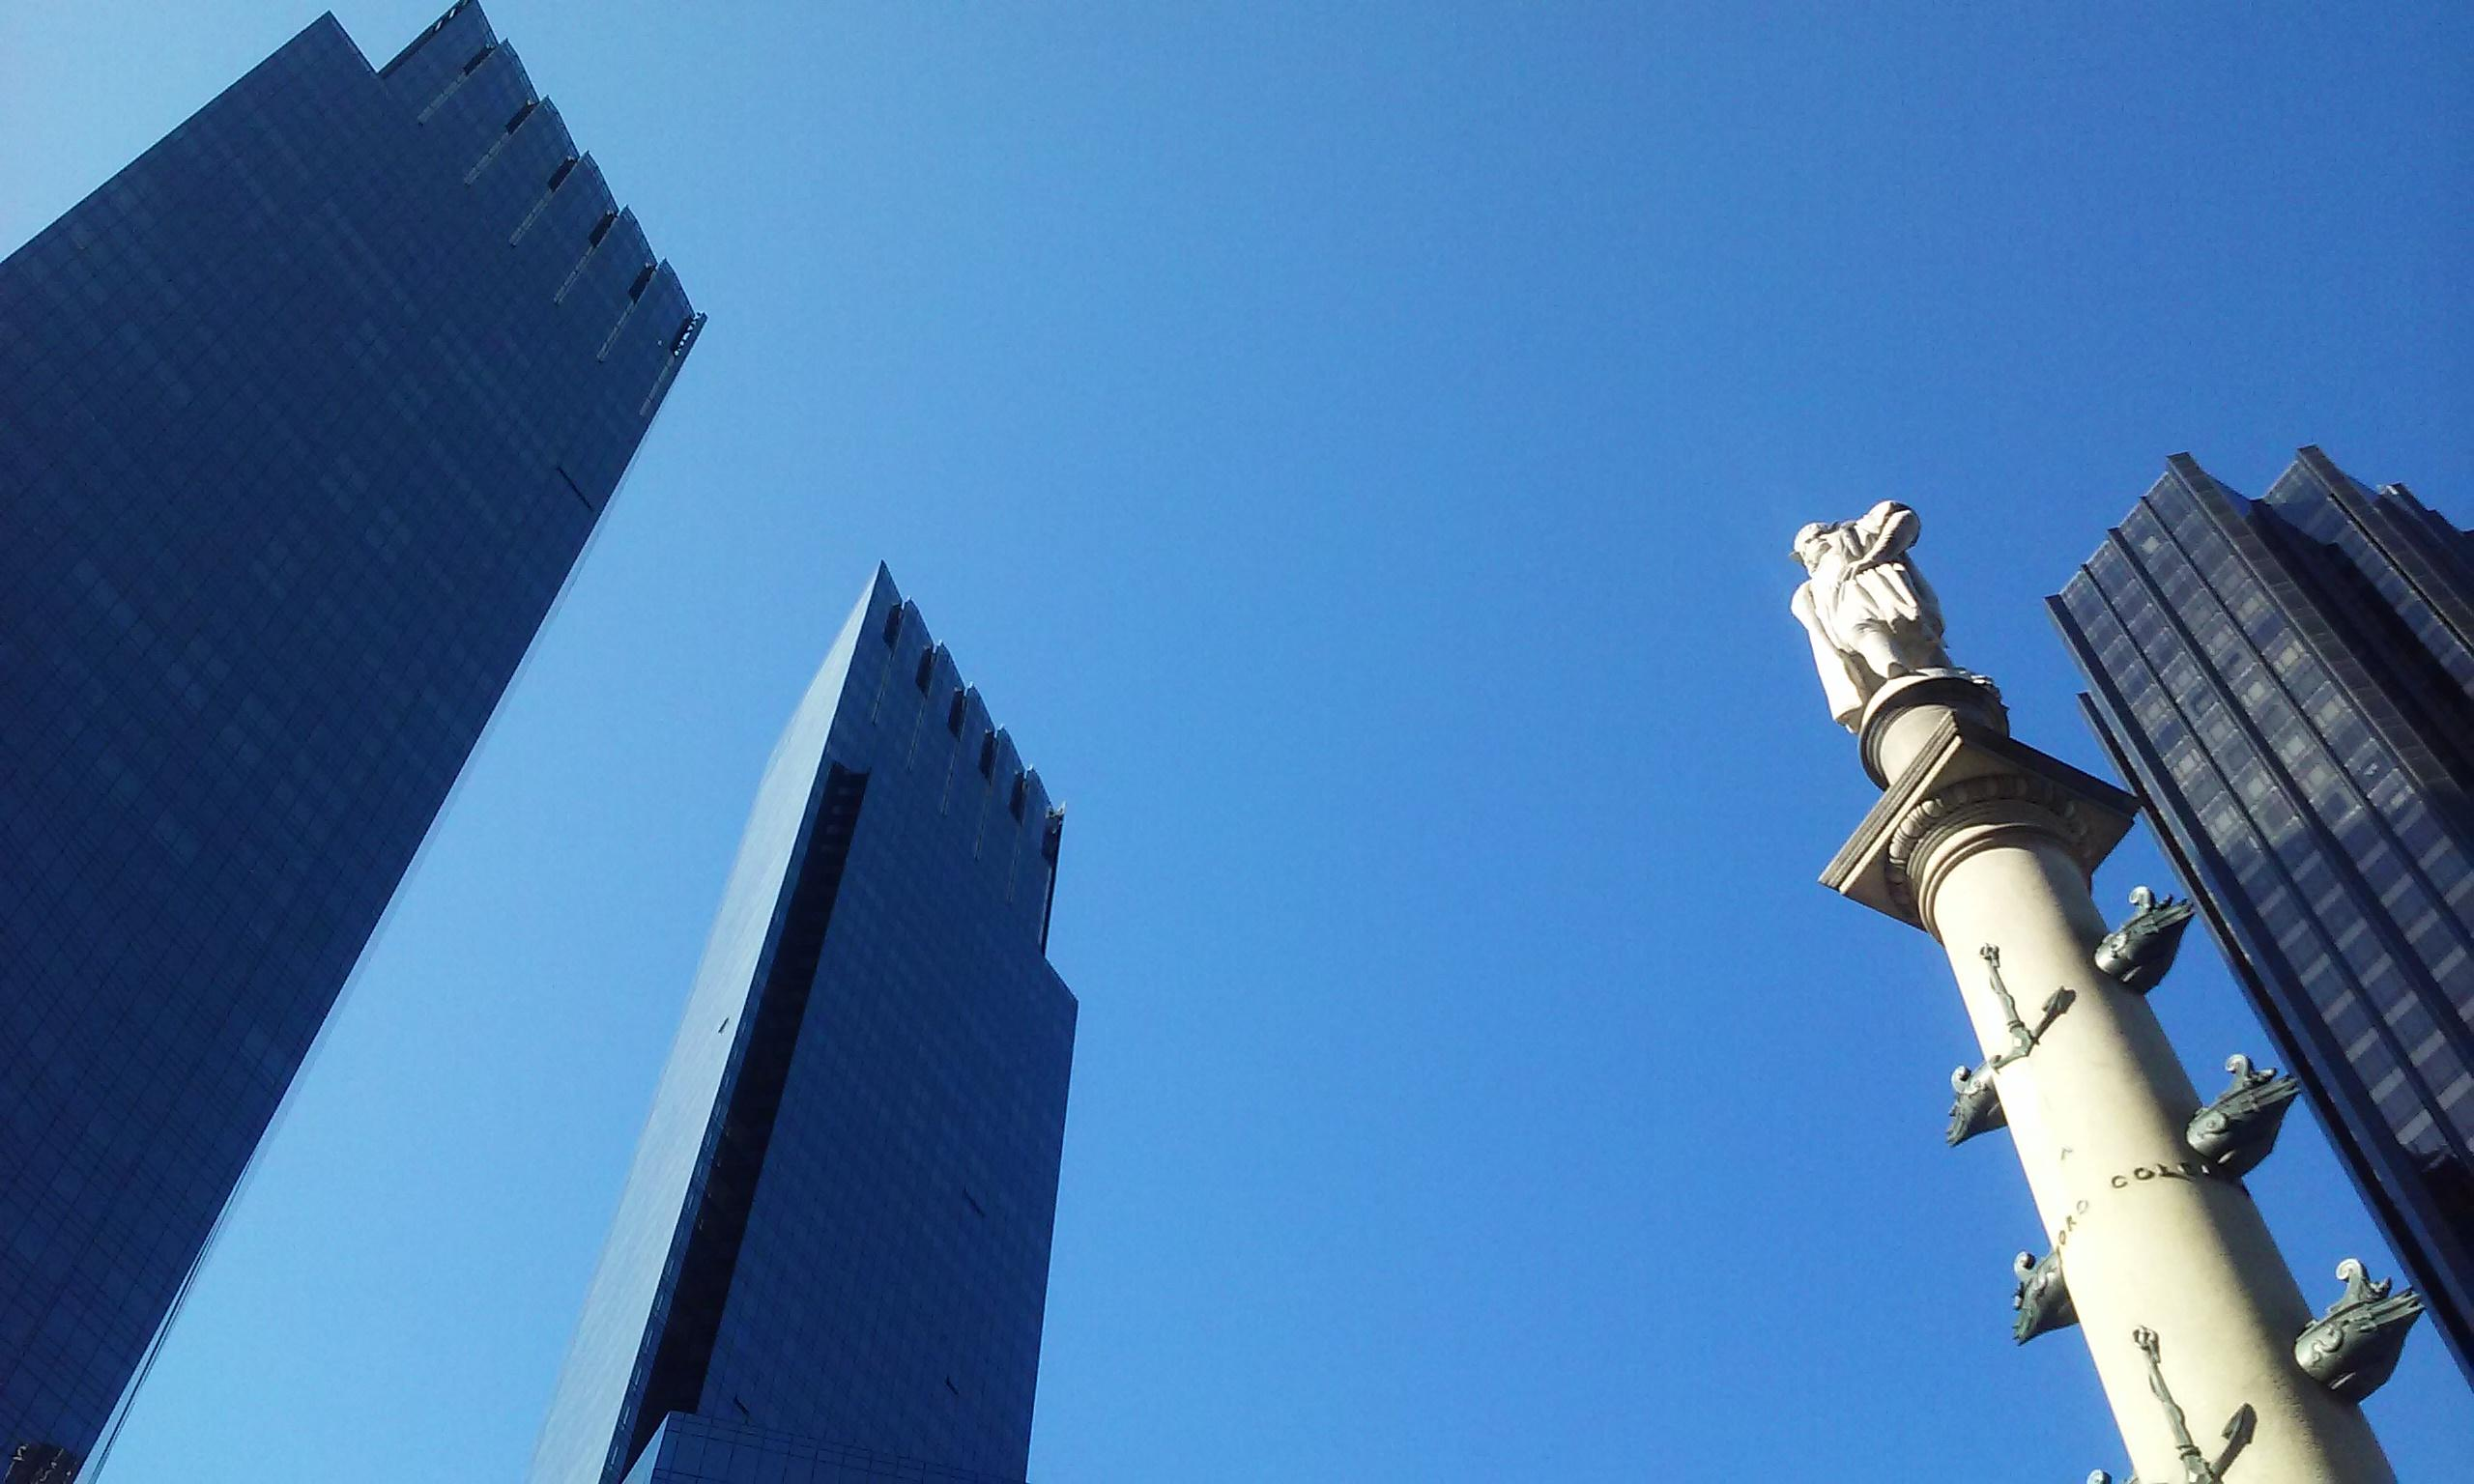 Columbus Circle and the a Time Warner Building